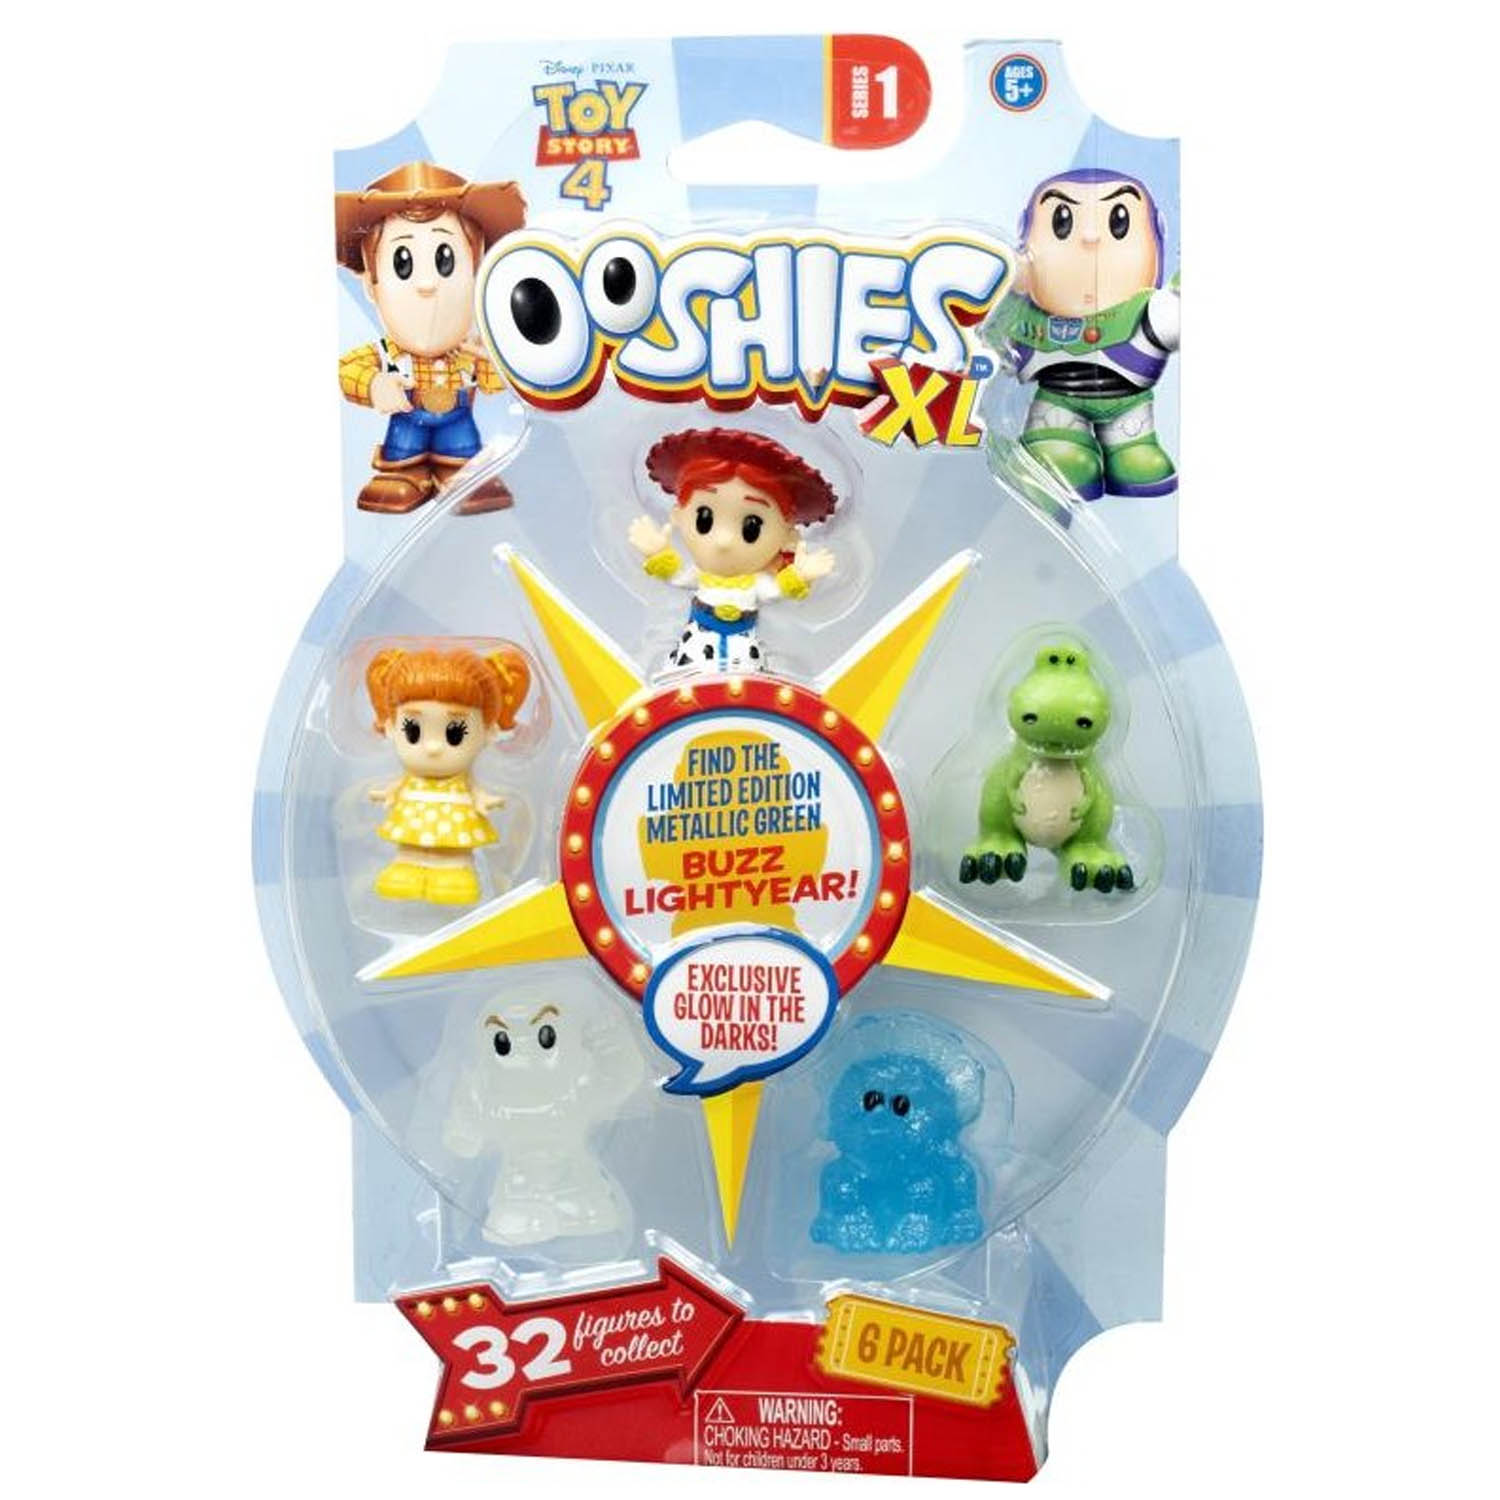 Disney Toy Story 4 Ooshies XL Series 1 6 Pack Jessie Rex Trixie